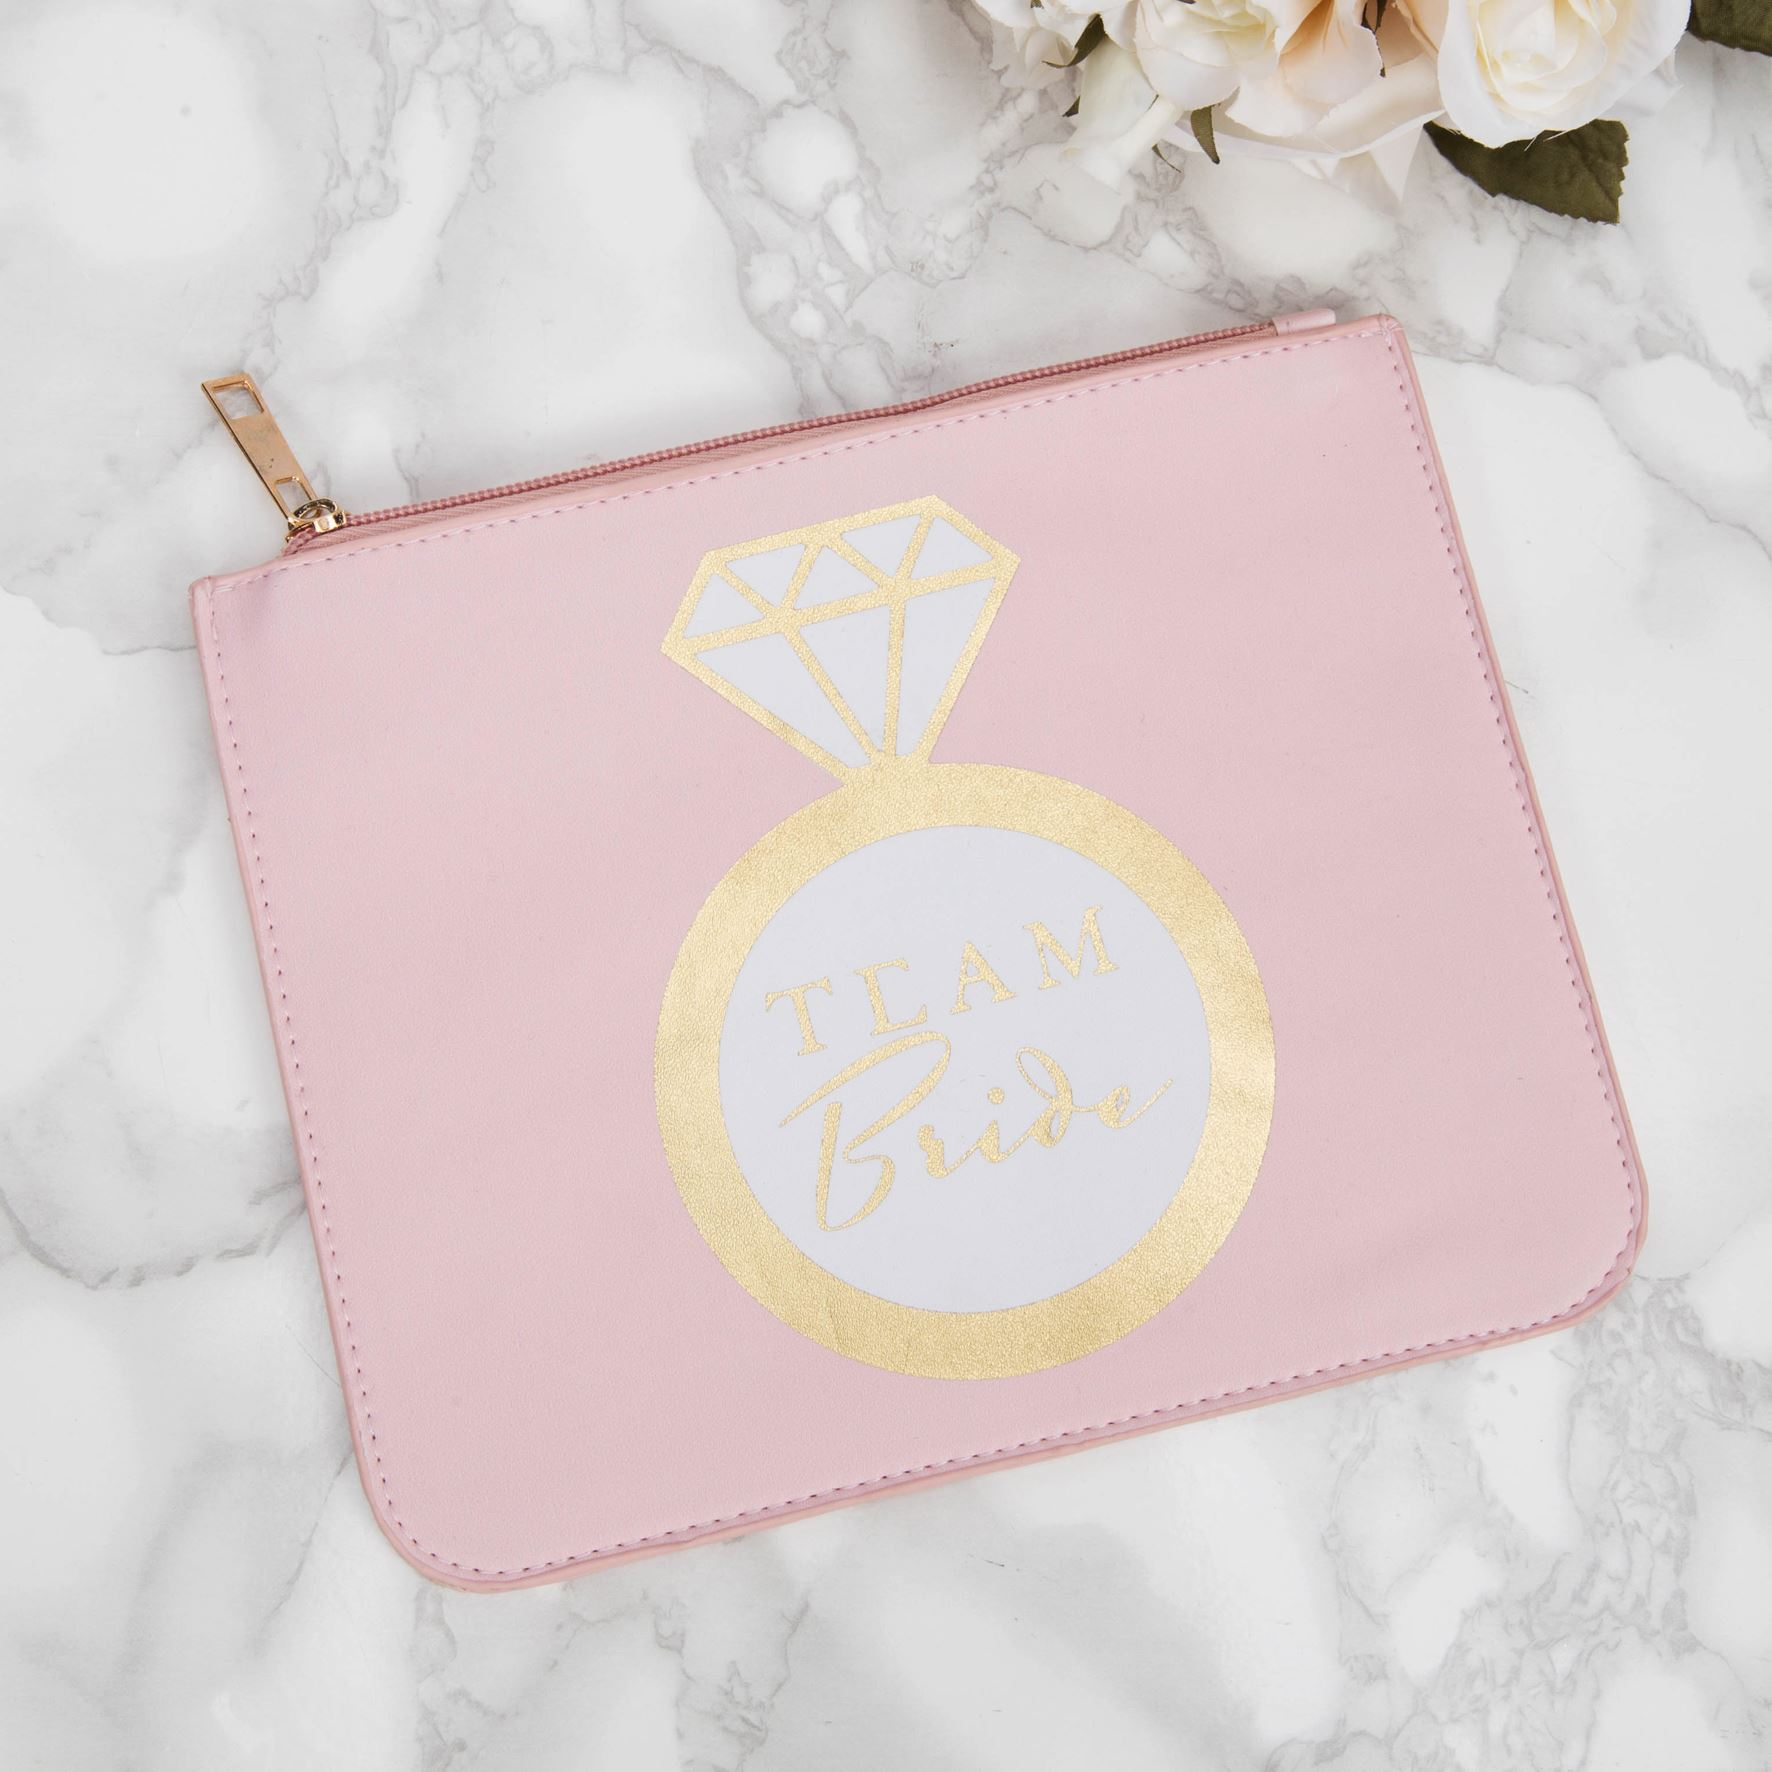 Bridal Shower Pink Leatherette Cosmetic Bag